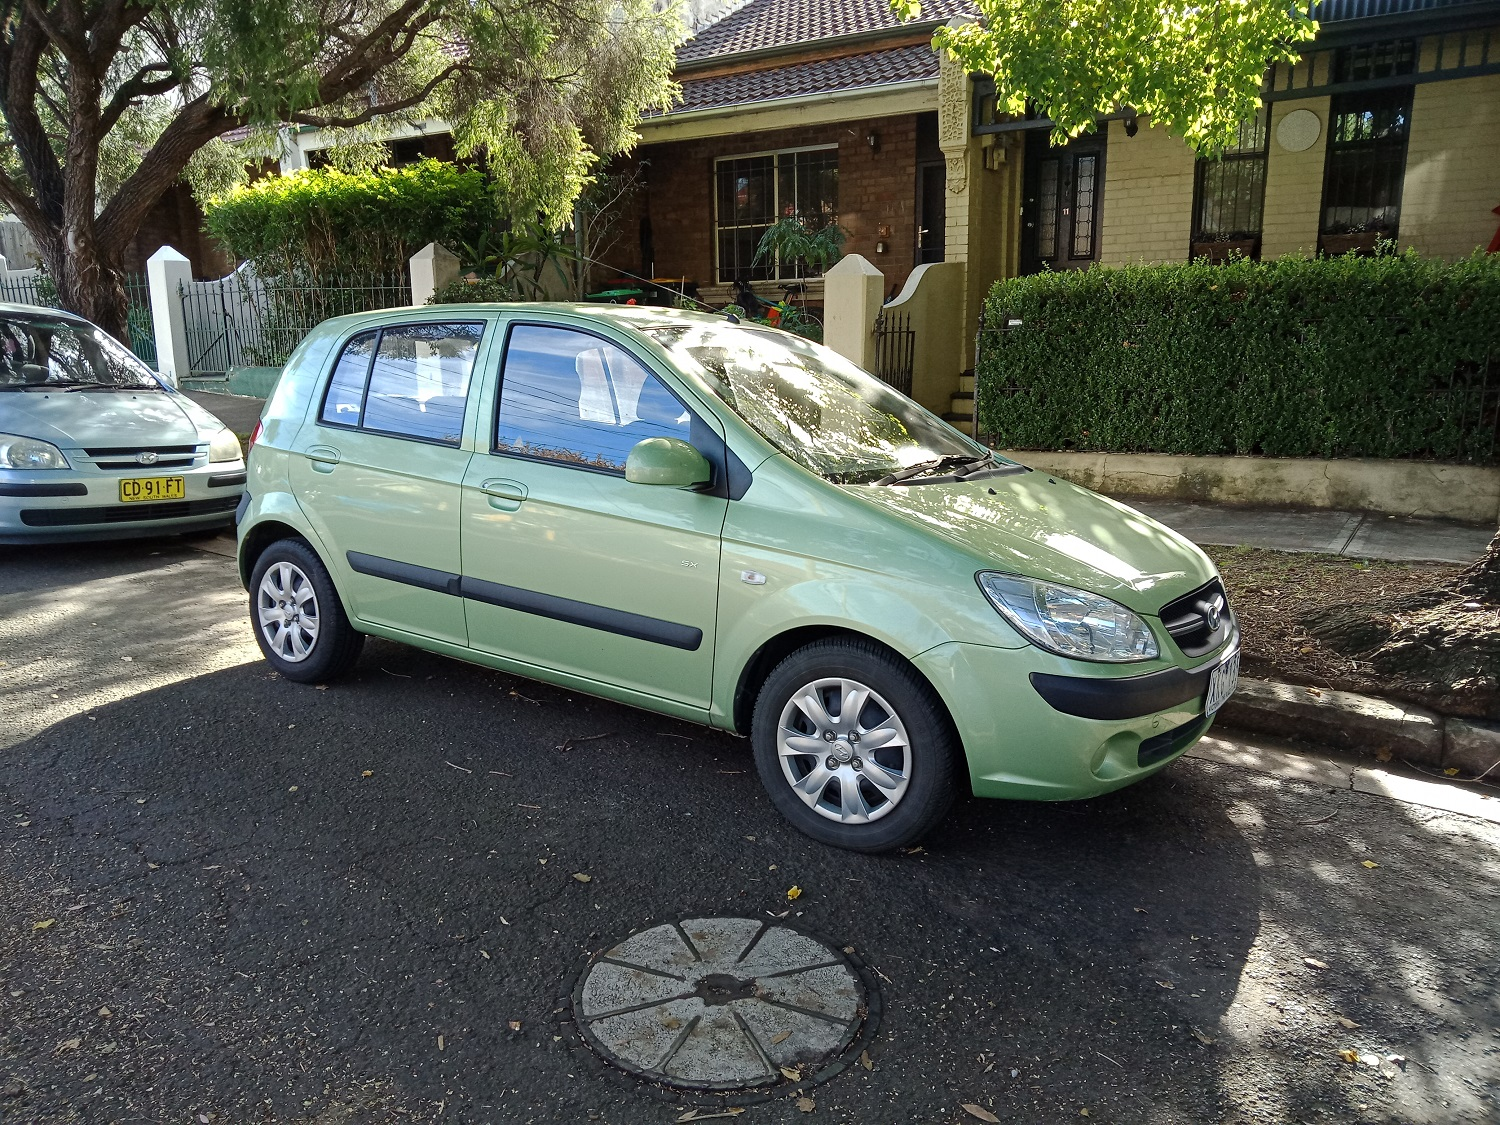 Picture of Amber's 2009 Hyundai Getz